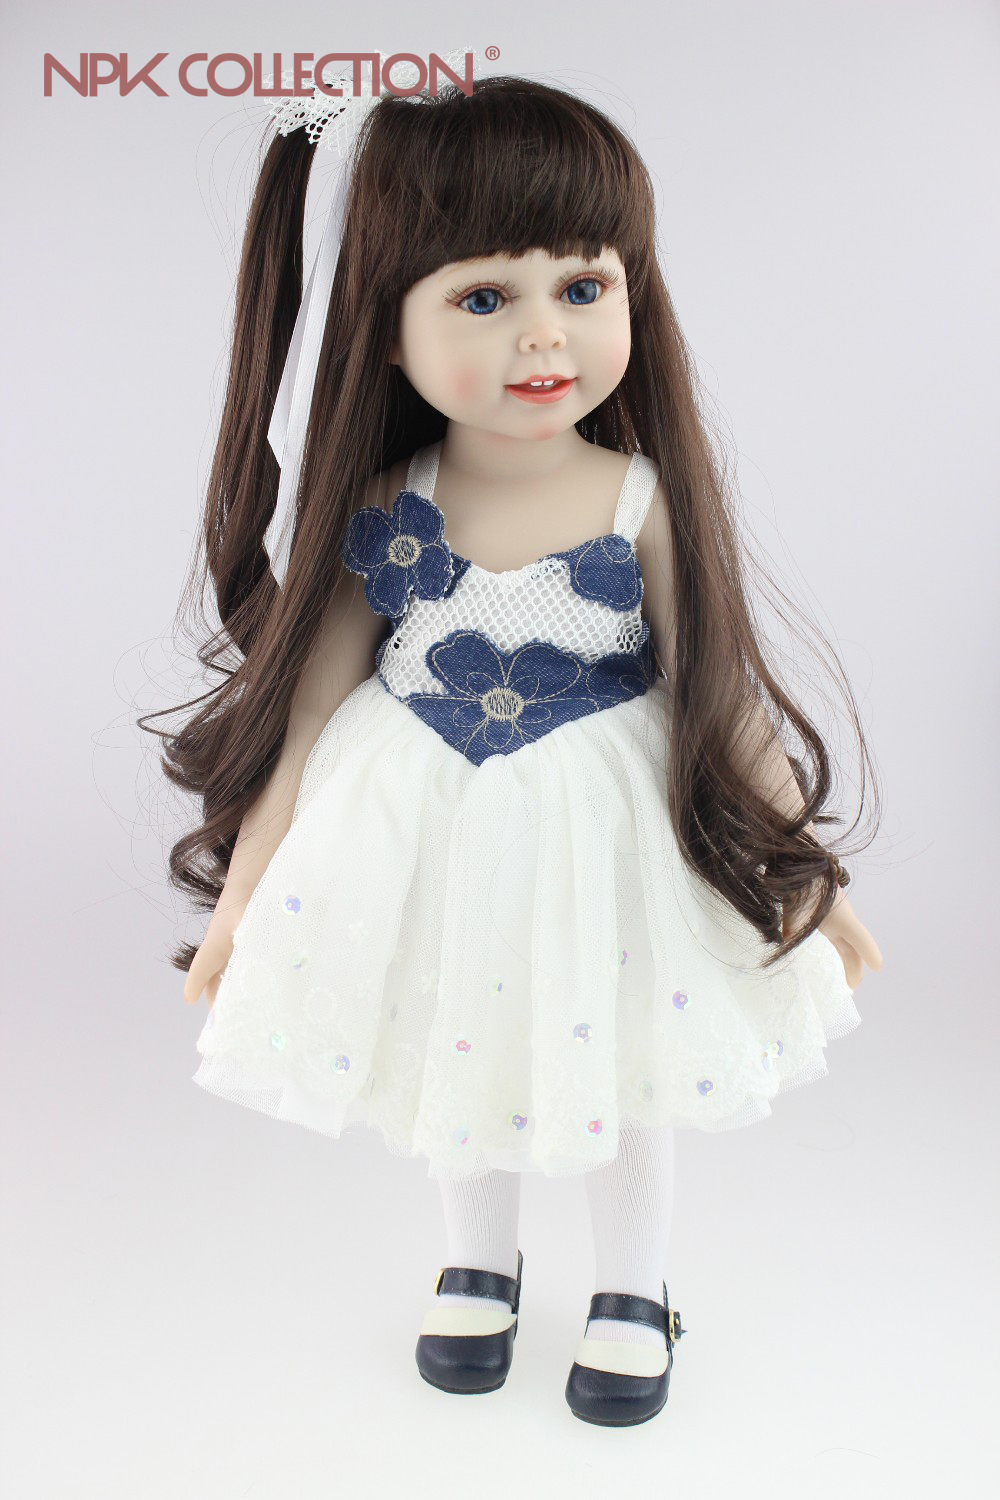 soft gentle touch 18inches American girl doll Journey Girl Dollie& me fashion doll birthday gift toys for girl children odeon light подвесной светильник odeon light bits 3363 1